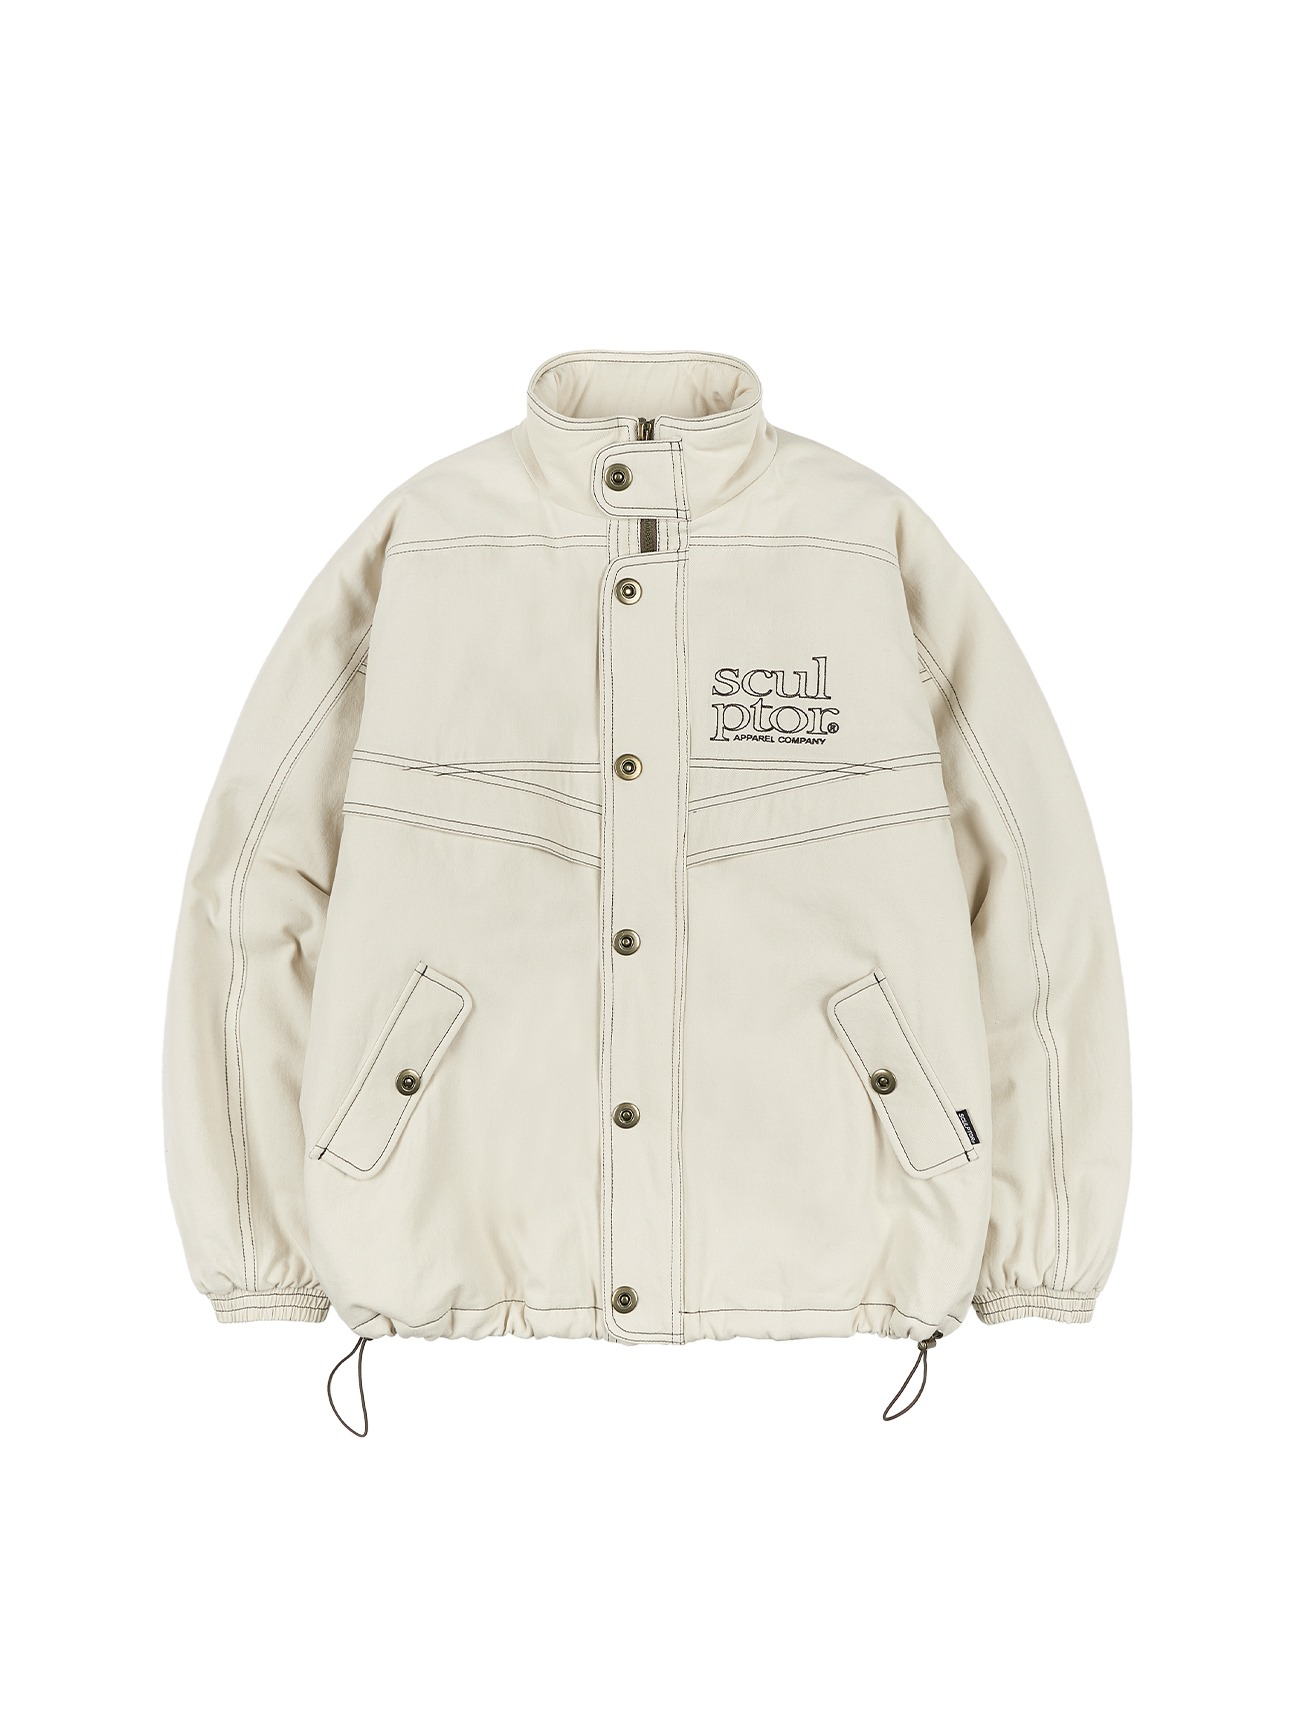 Contrast Stitch Work Jacket Cream